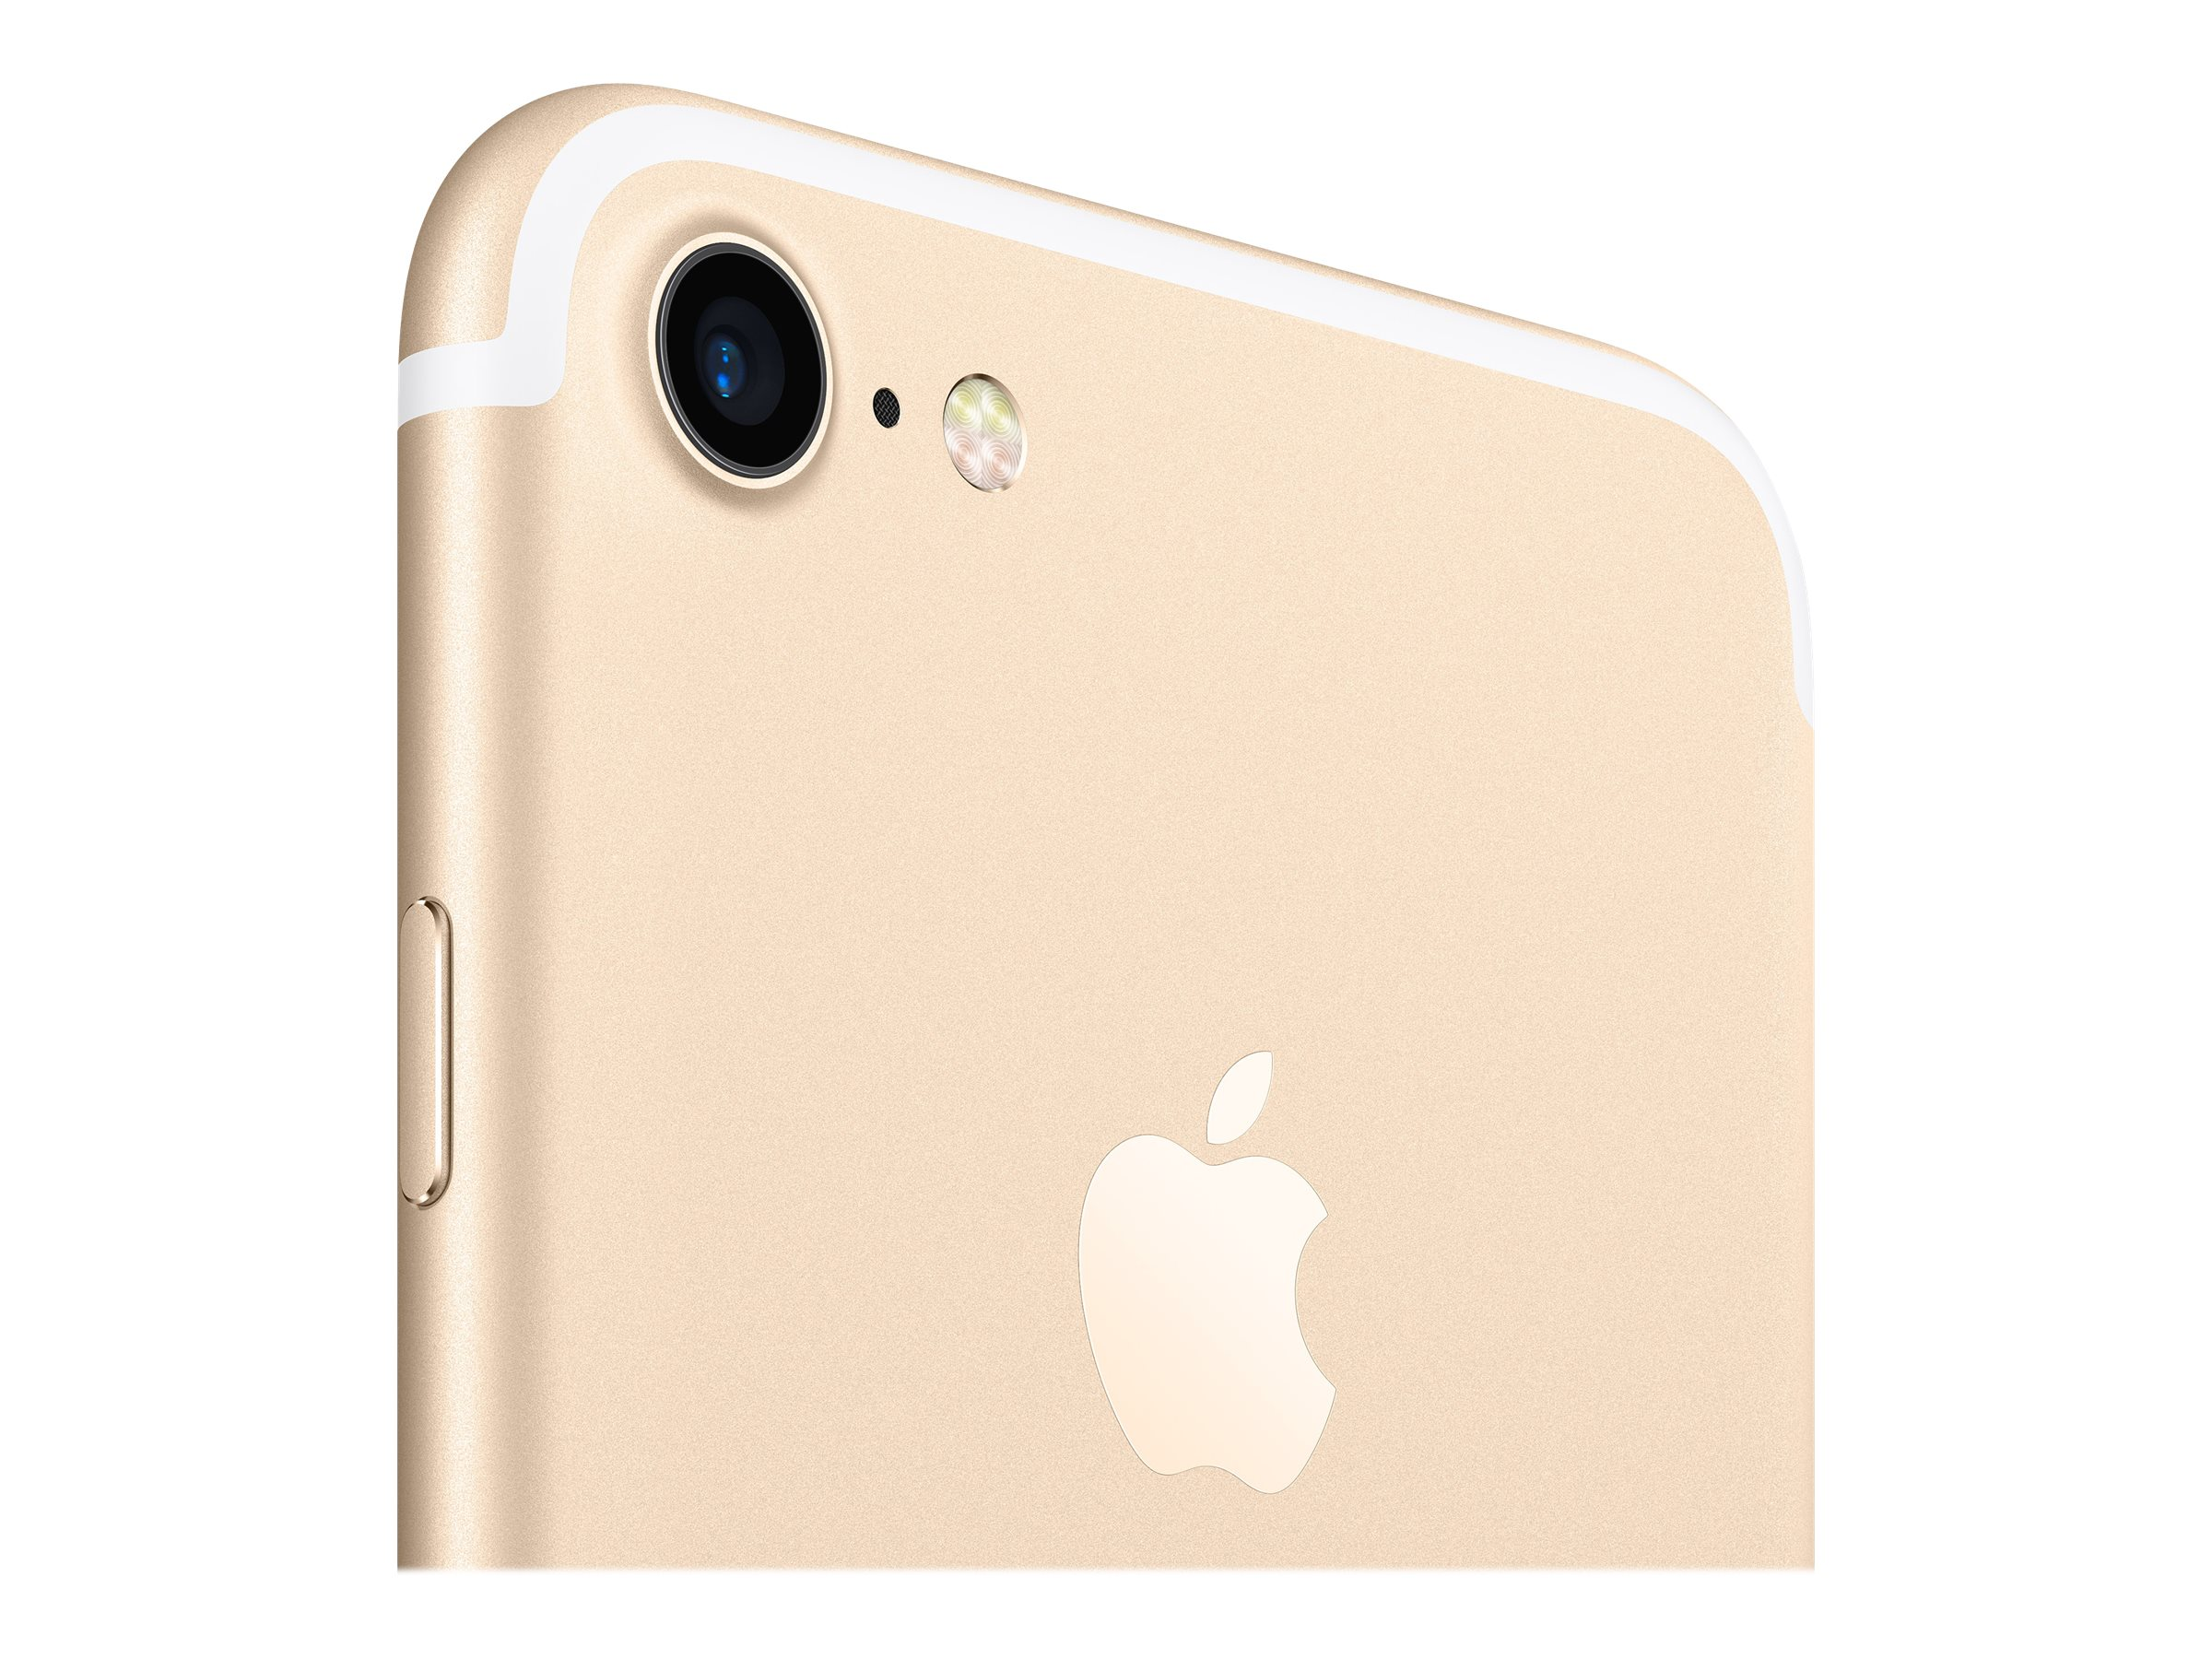 Iphone 7 Abonnement Apple Iphone 7 32gb Gold O2c